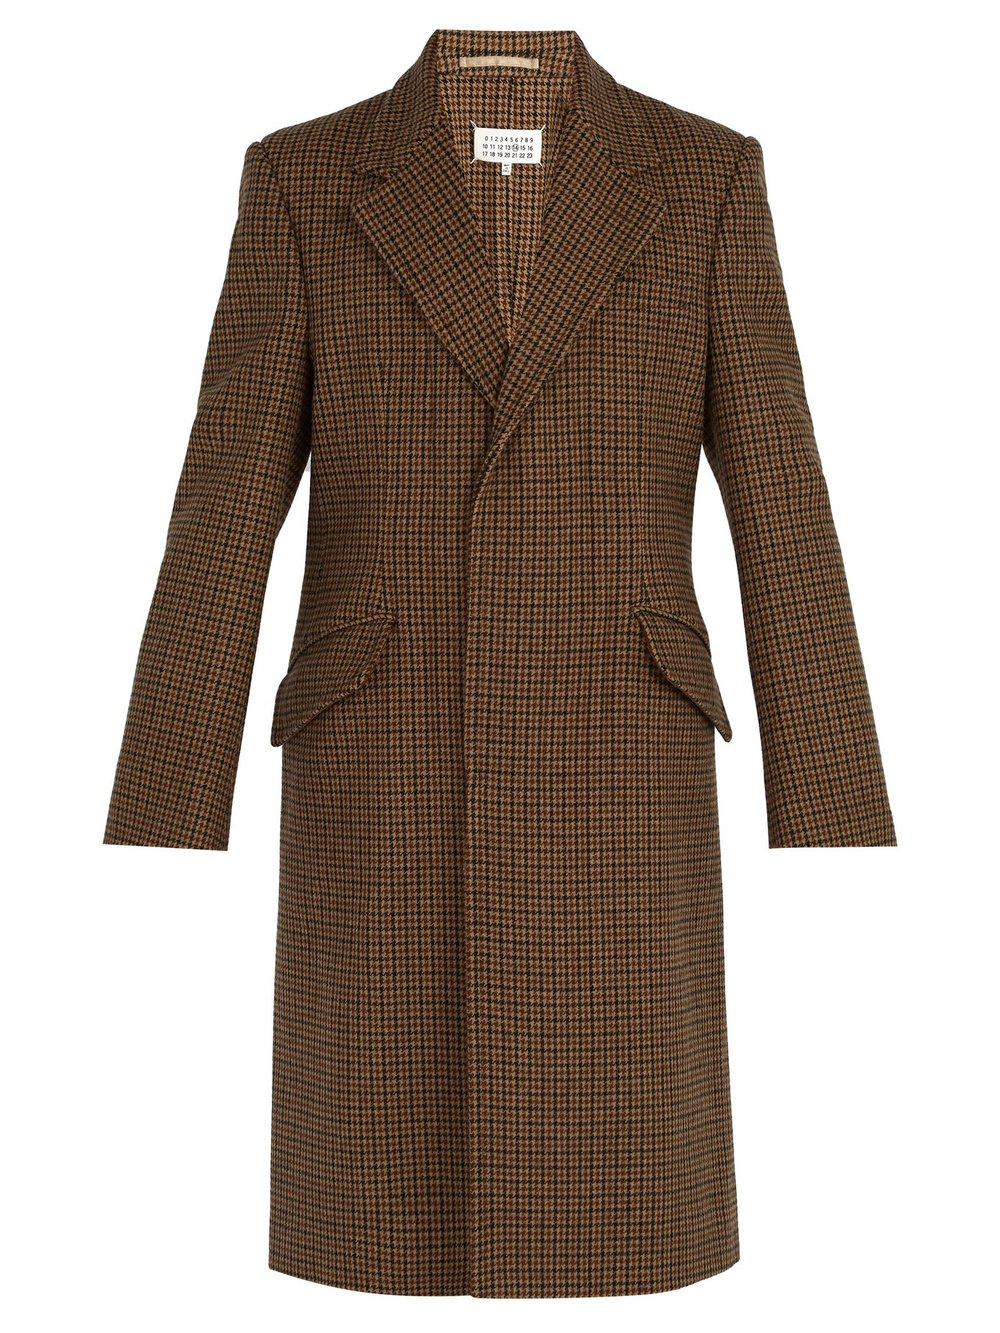 MAISON MARGIELA - if I ever were to convert my husband to becoming a Margiela wearer, this wool houndstooth coat would be it.